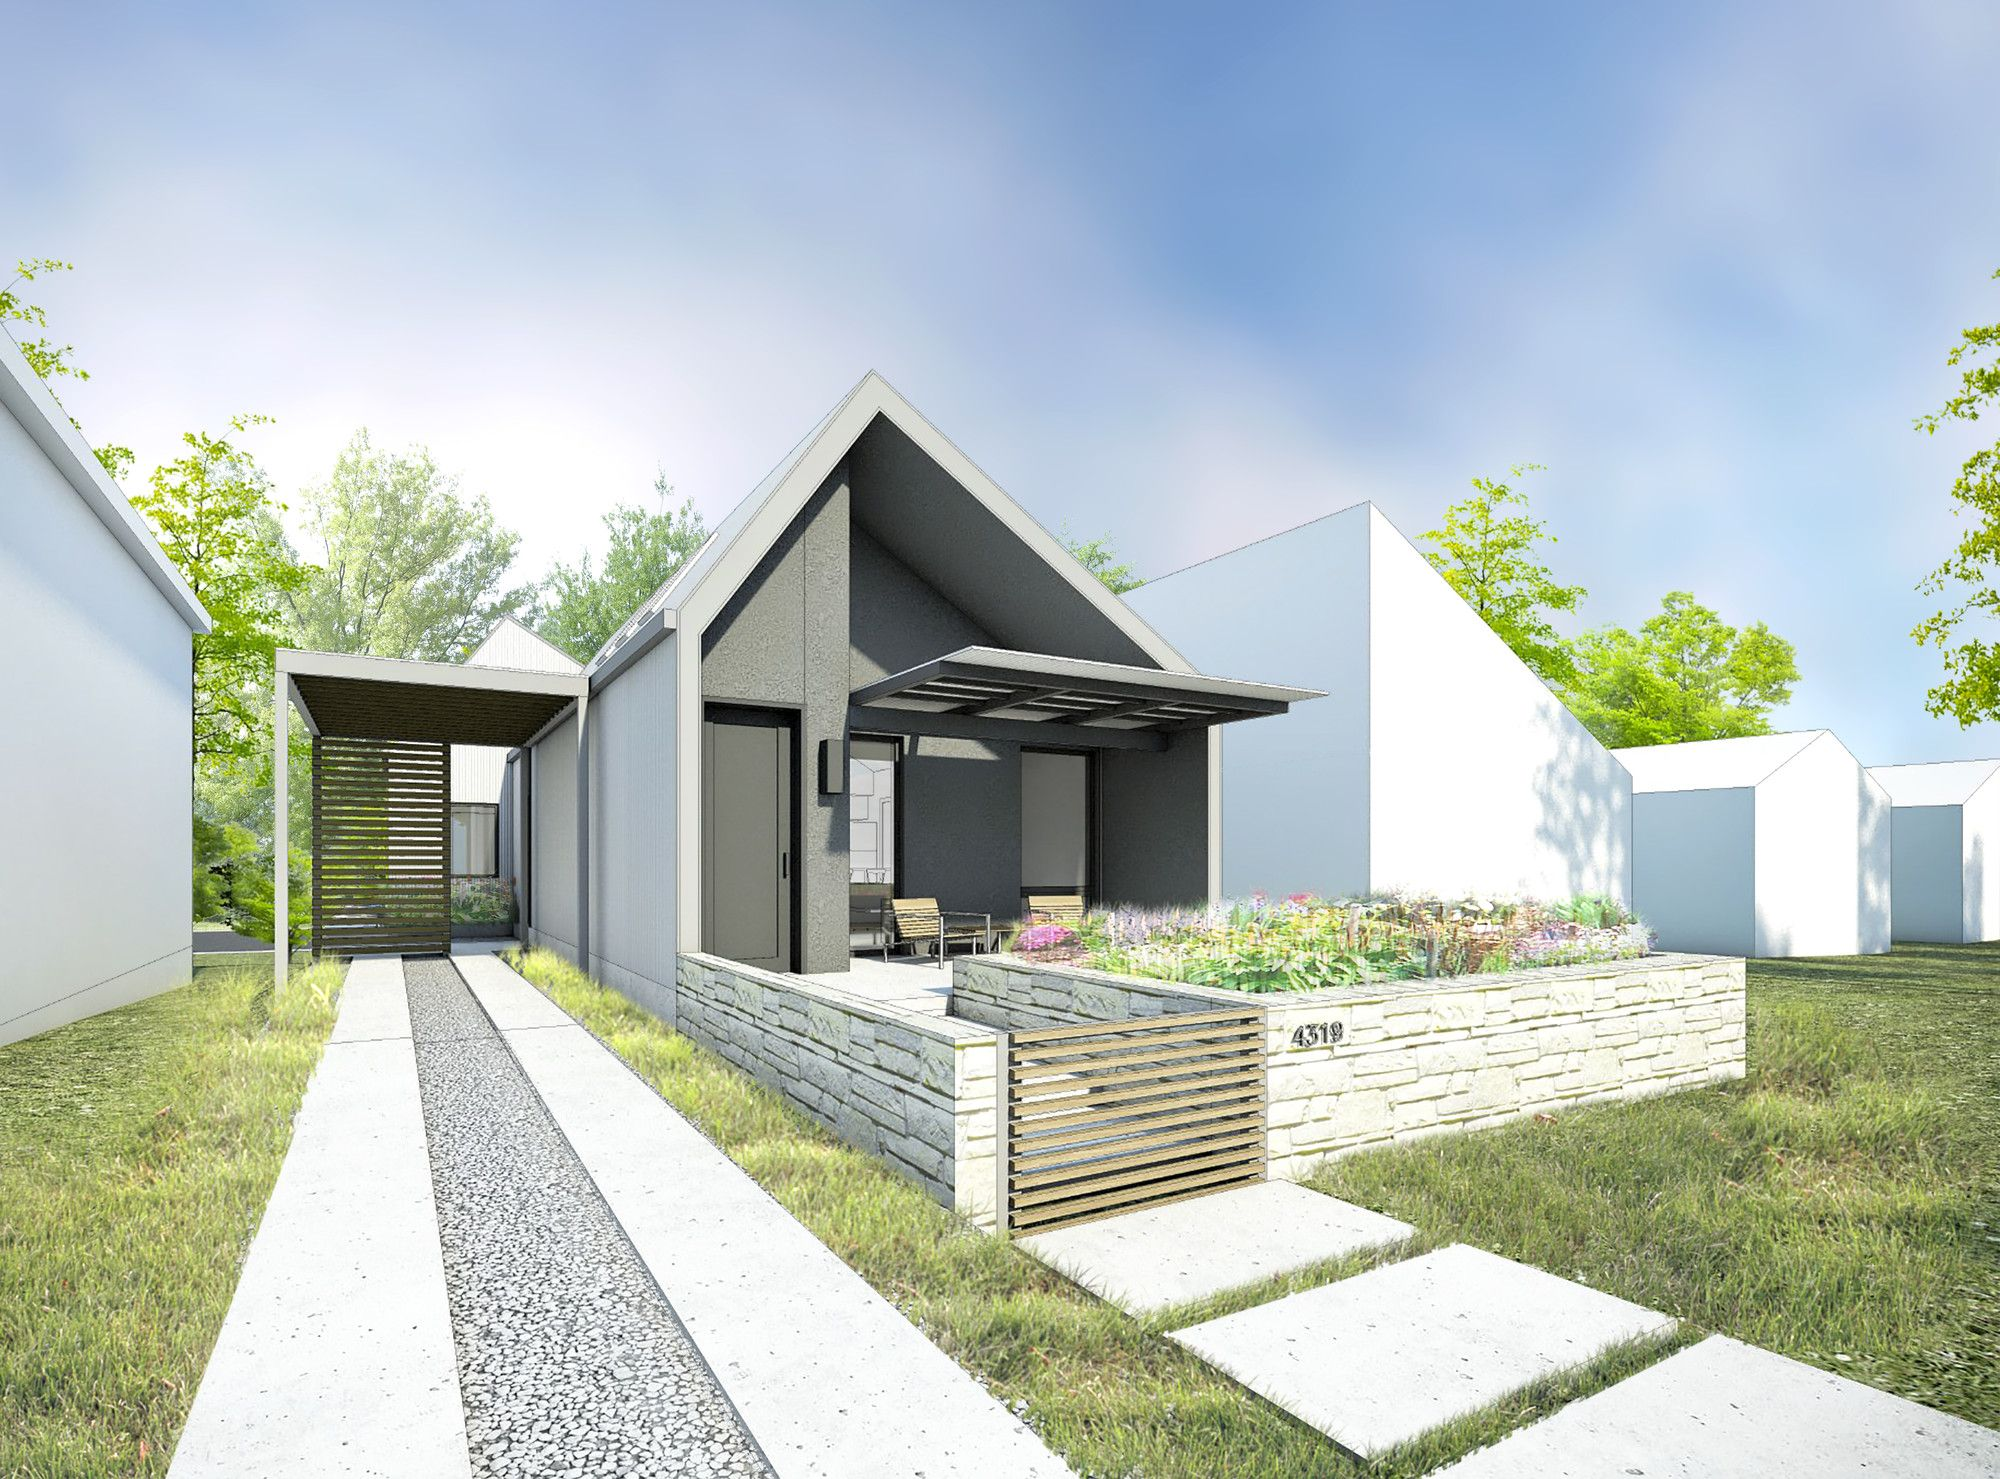 Gallery of make it right releases six single family house designs for manheim park community also rh pinterest